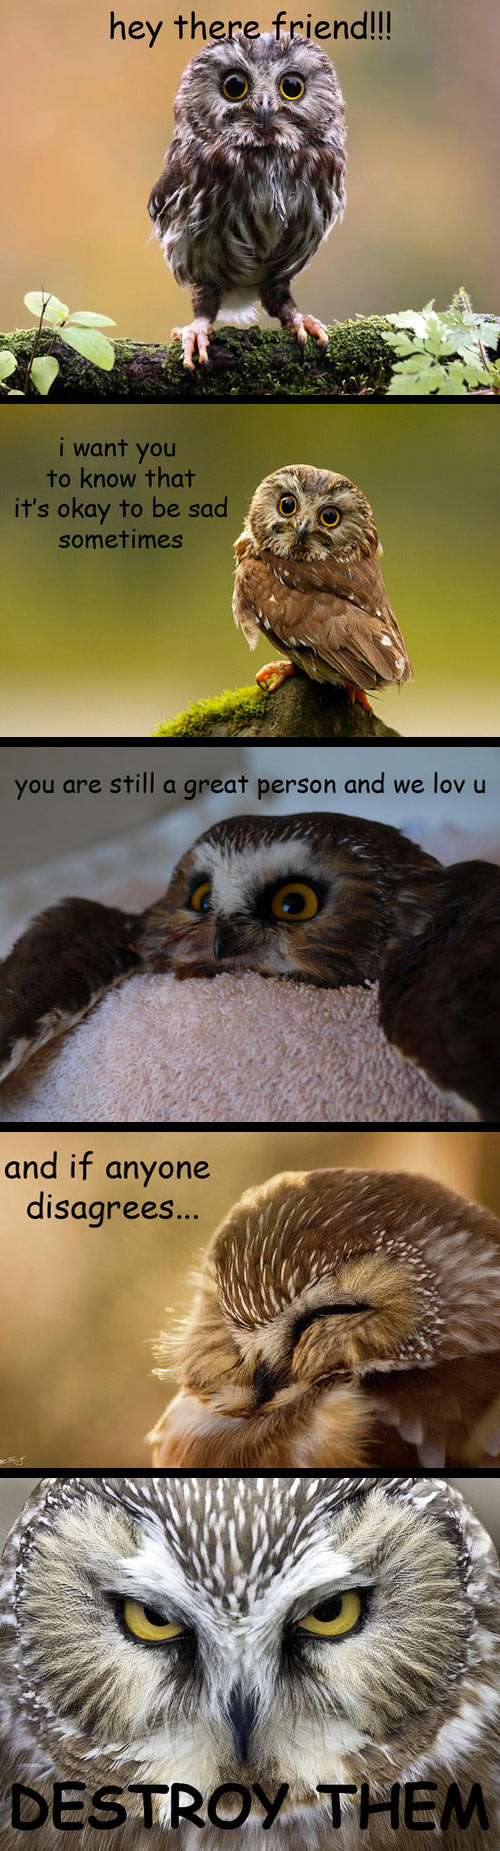 funny-owl-sad-destroy-cute